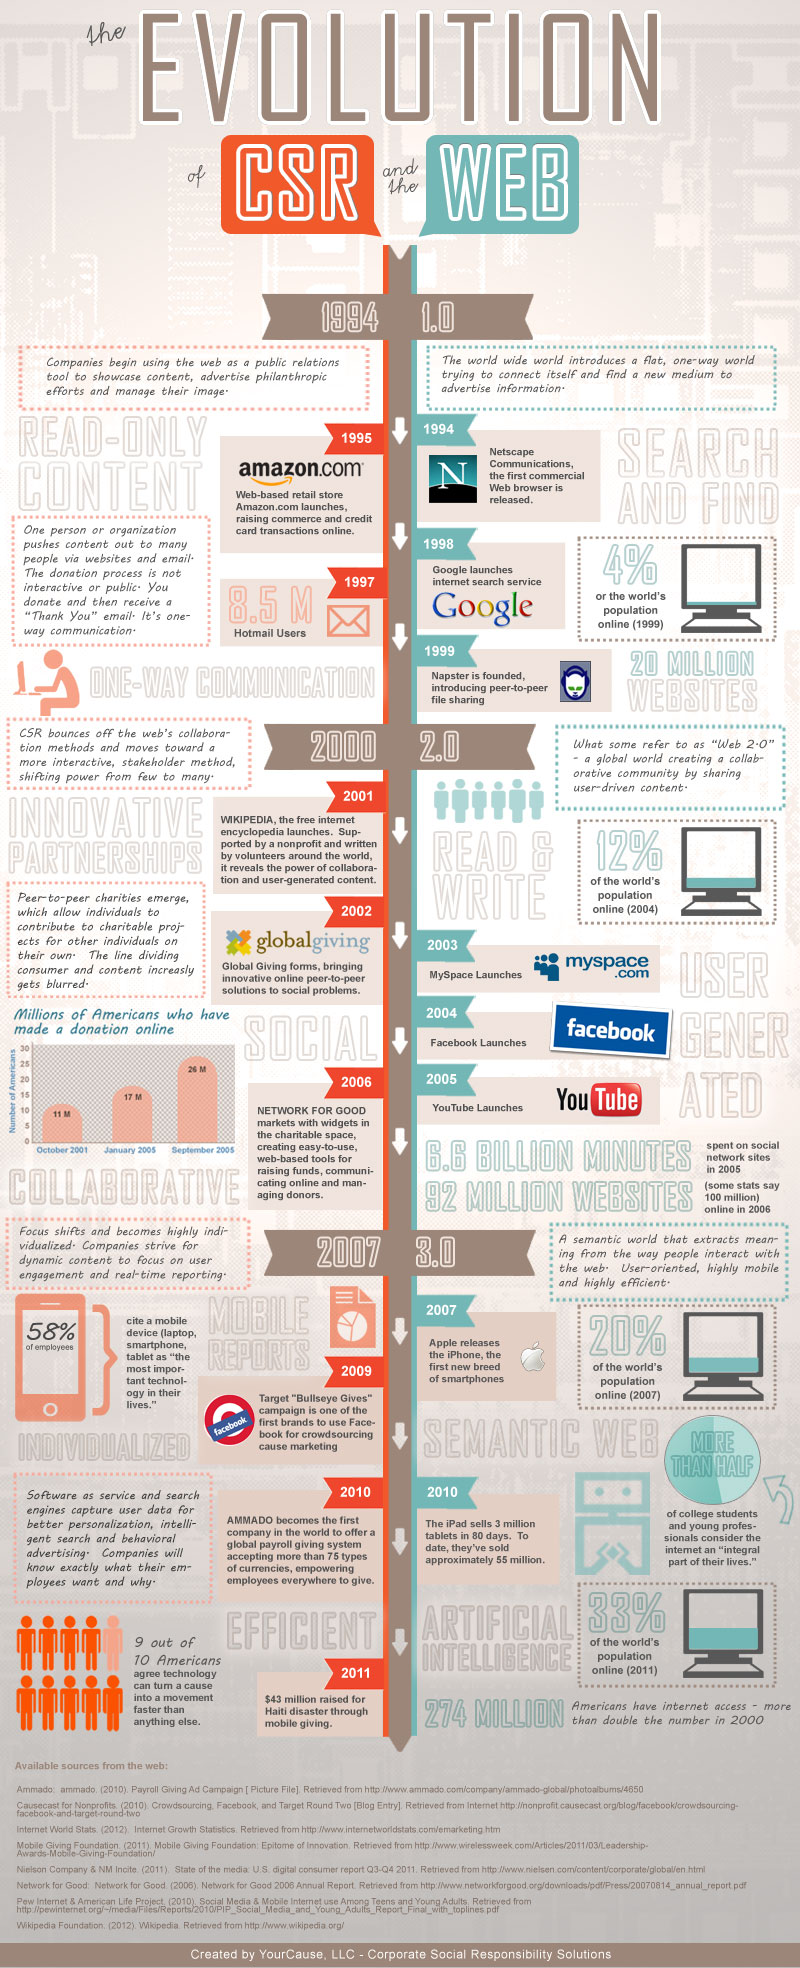 [INFOGRAPHIC]-The-Evolution-of-CSR-and-the-Web